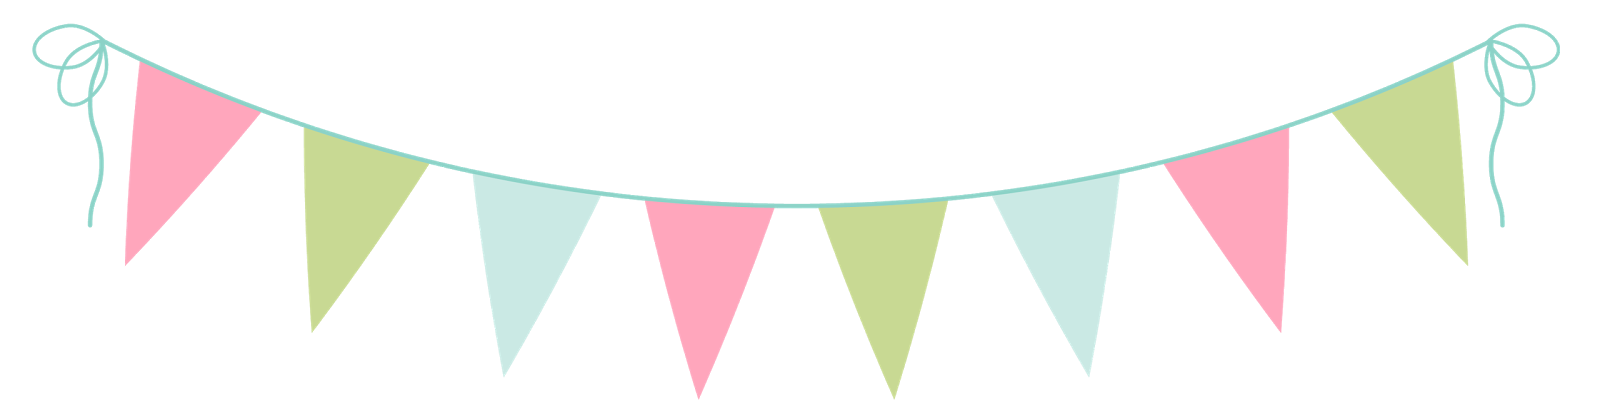 Bunting image clipart svg freeuse download Bunting Clipart | Free download best Bunting Clipart on ClipArtMag.com svg freeuse download